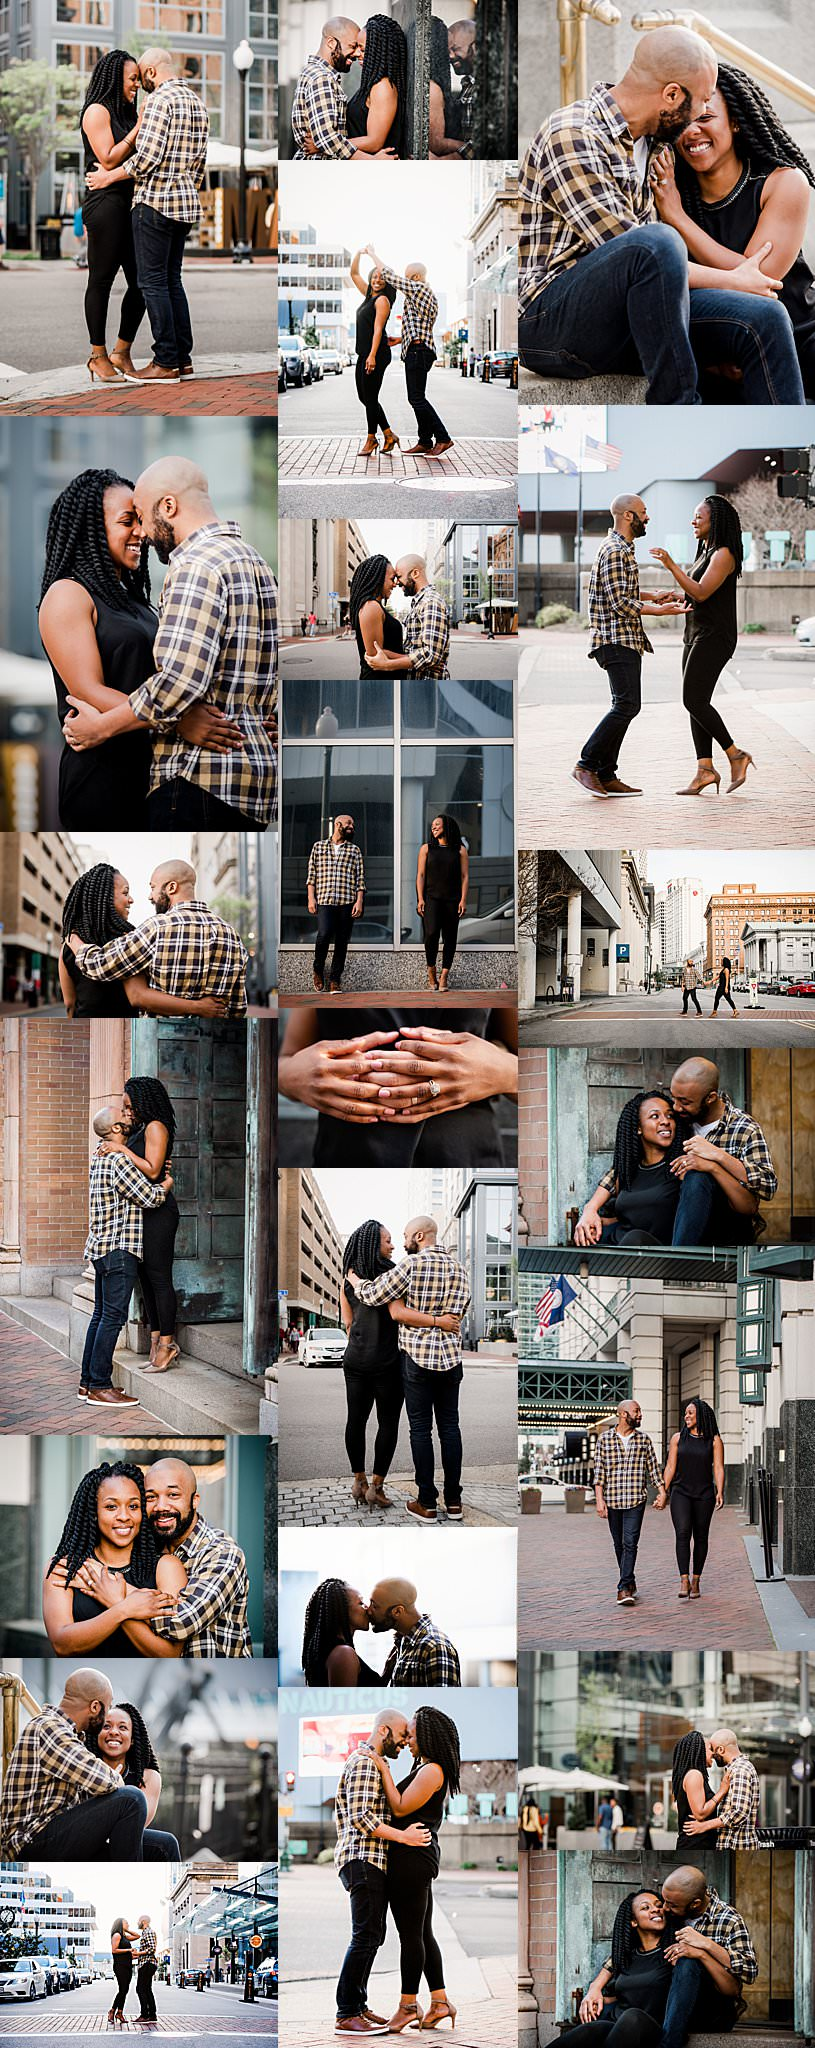 downtown-urban-engagement-photo-ideas-norfolk-va-melissa-bliss-photography-VA-wedding-pro.jpg